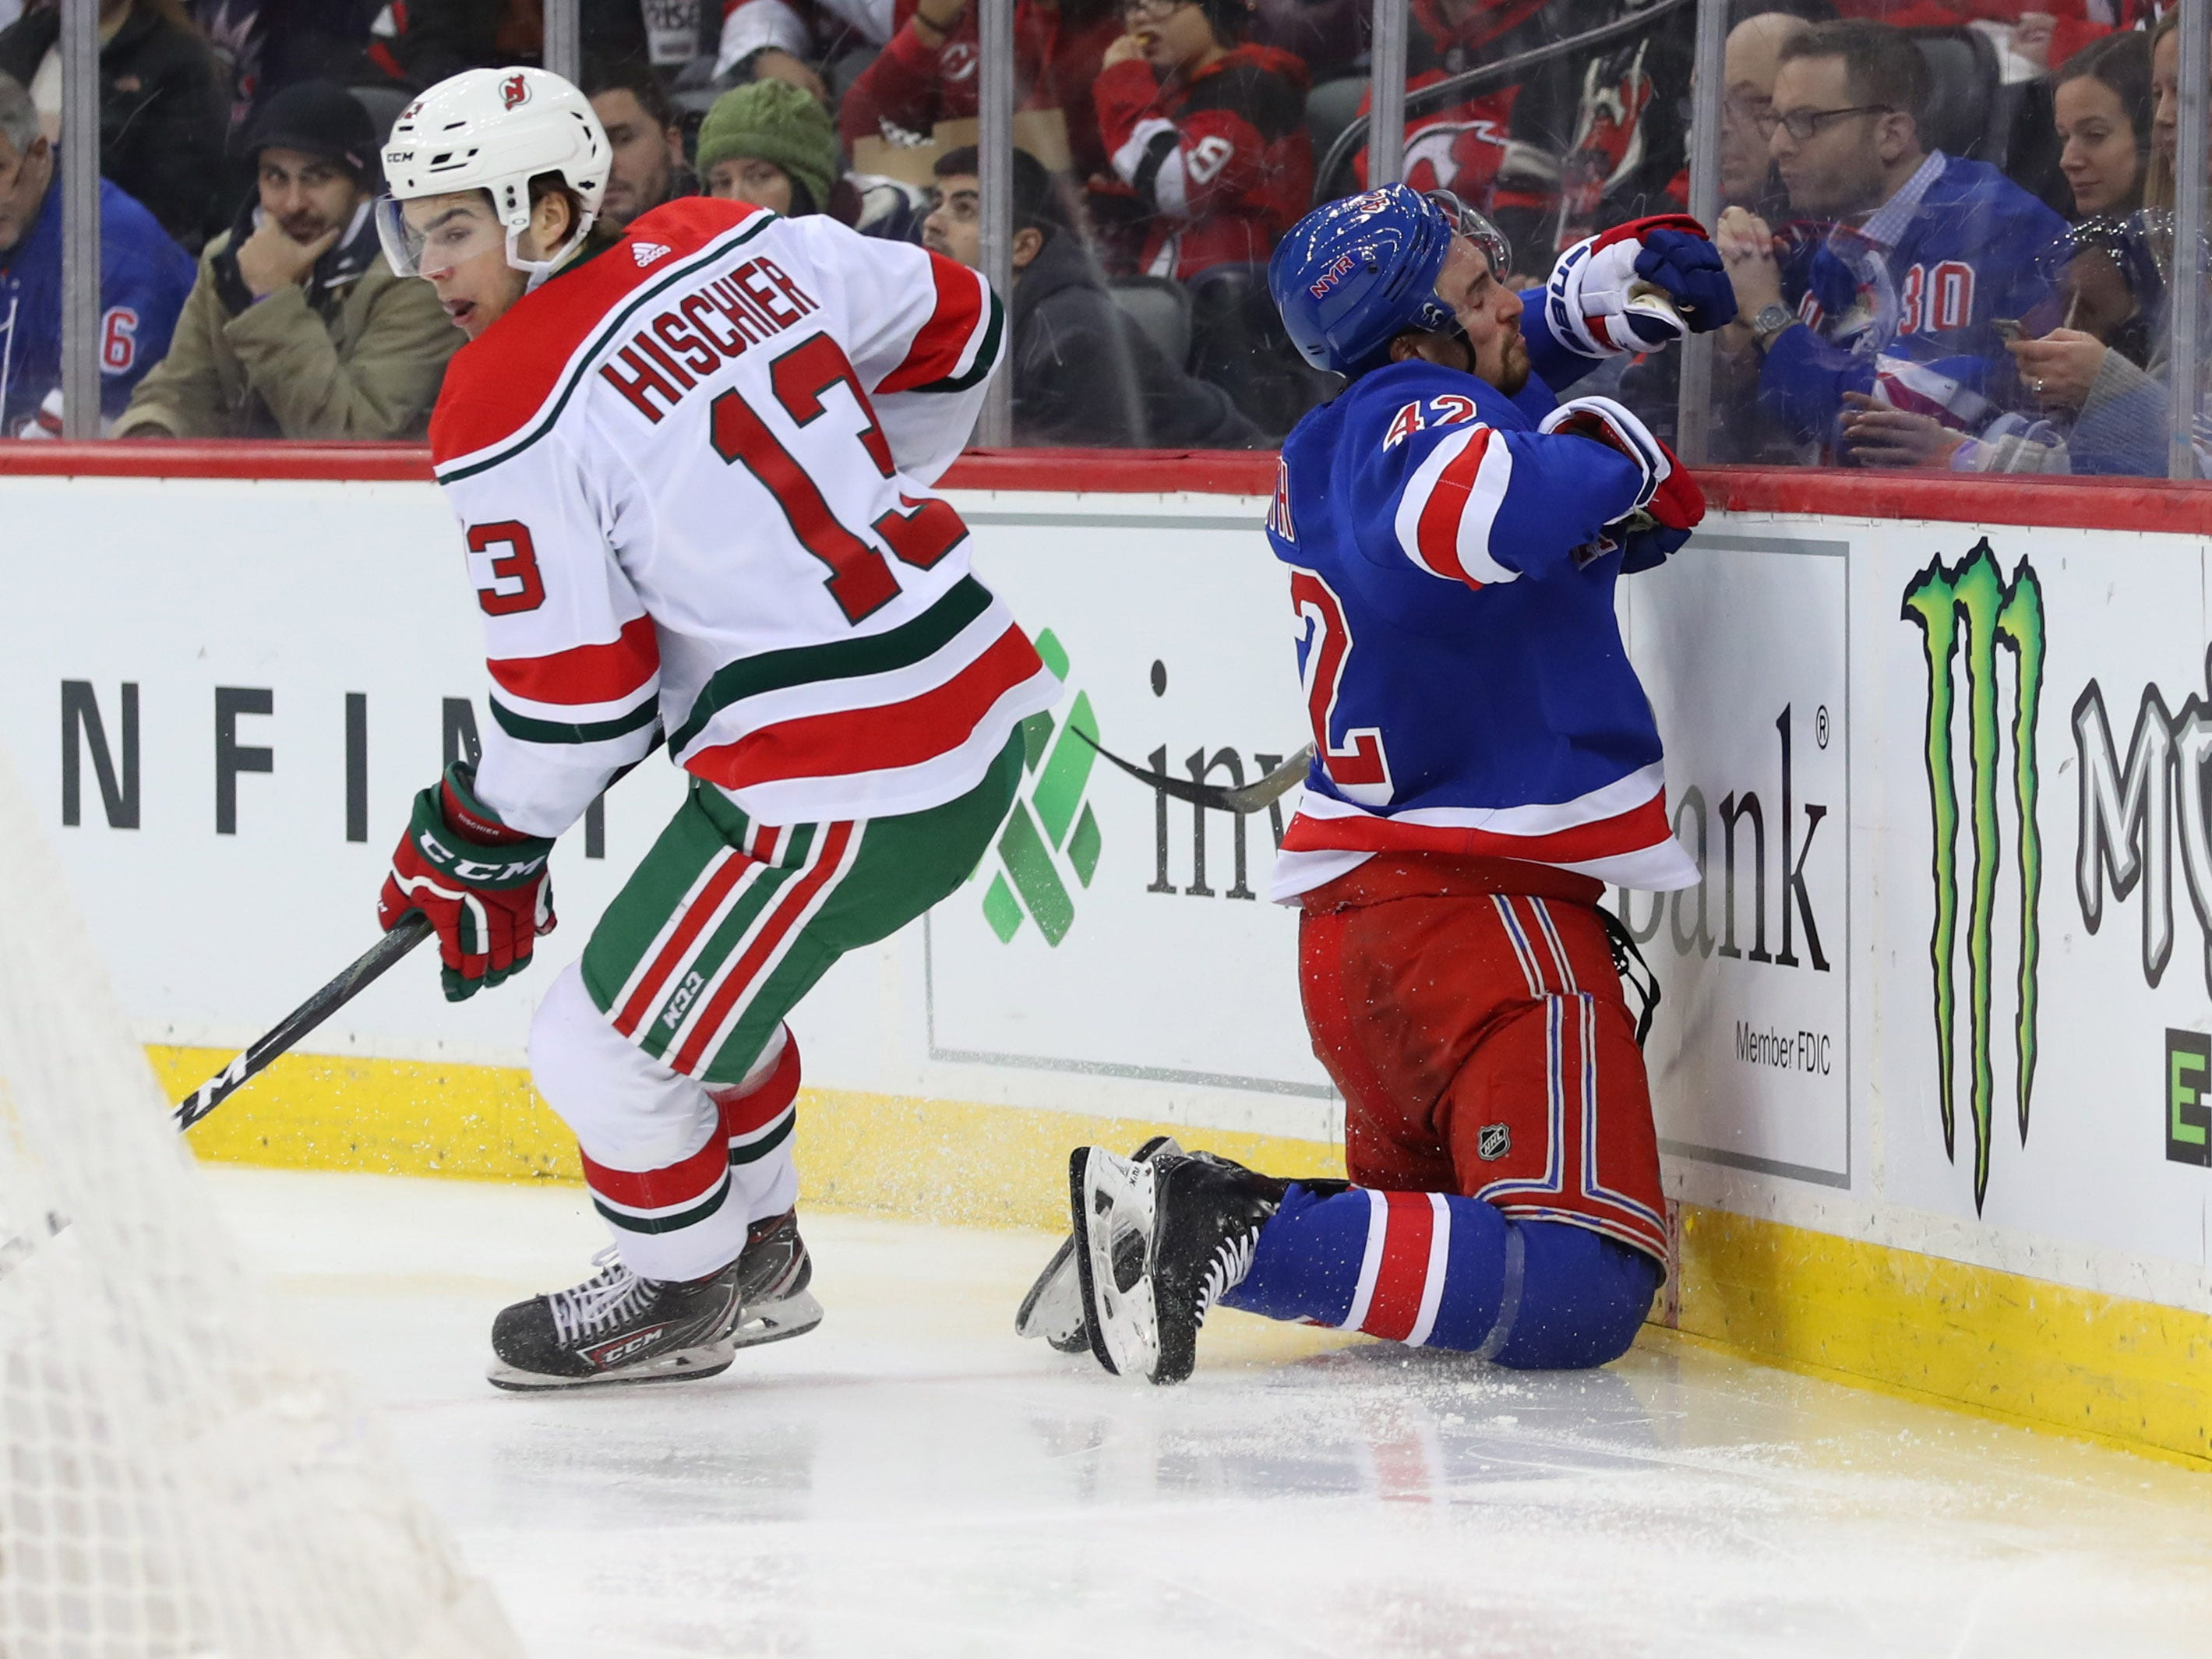 Jan 31, 2019; Newark, NJ, USA; New Jersey Devils center Nico Hischier (13) hits New York Rangers defenseman Brendan Smith (42) during the second period at Prudential Center.